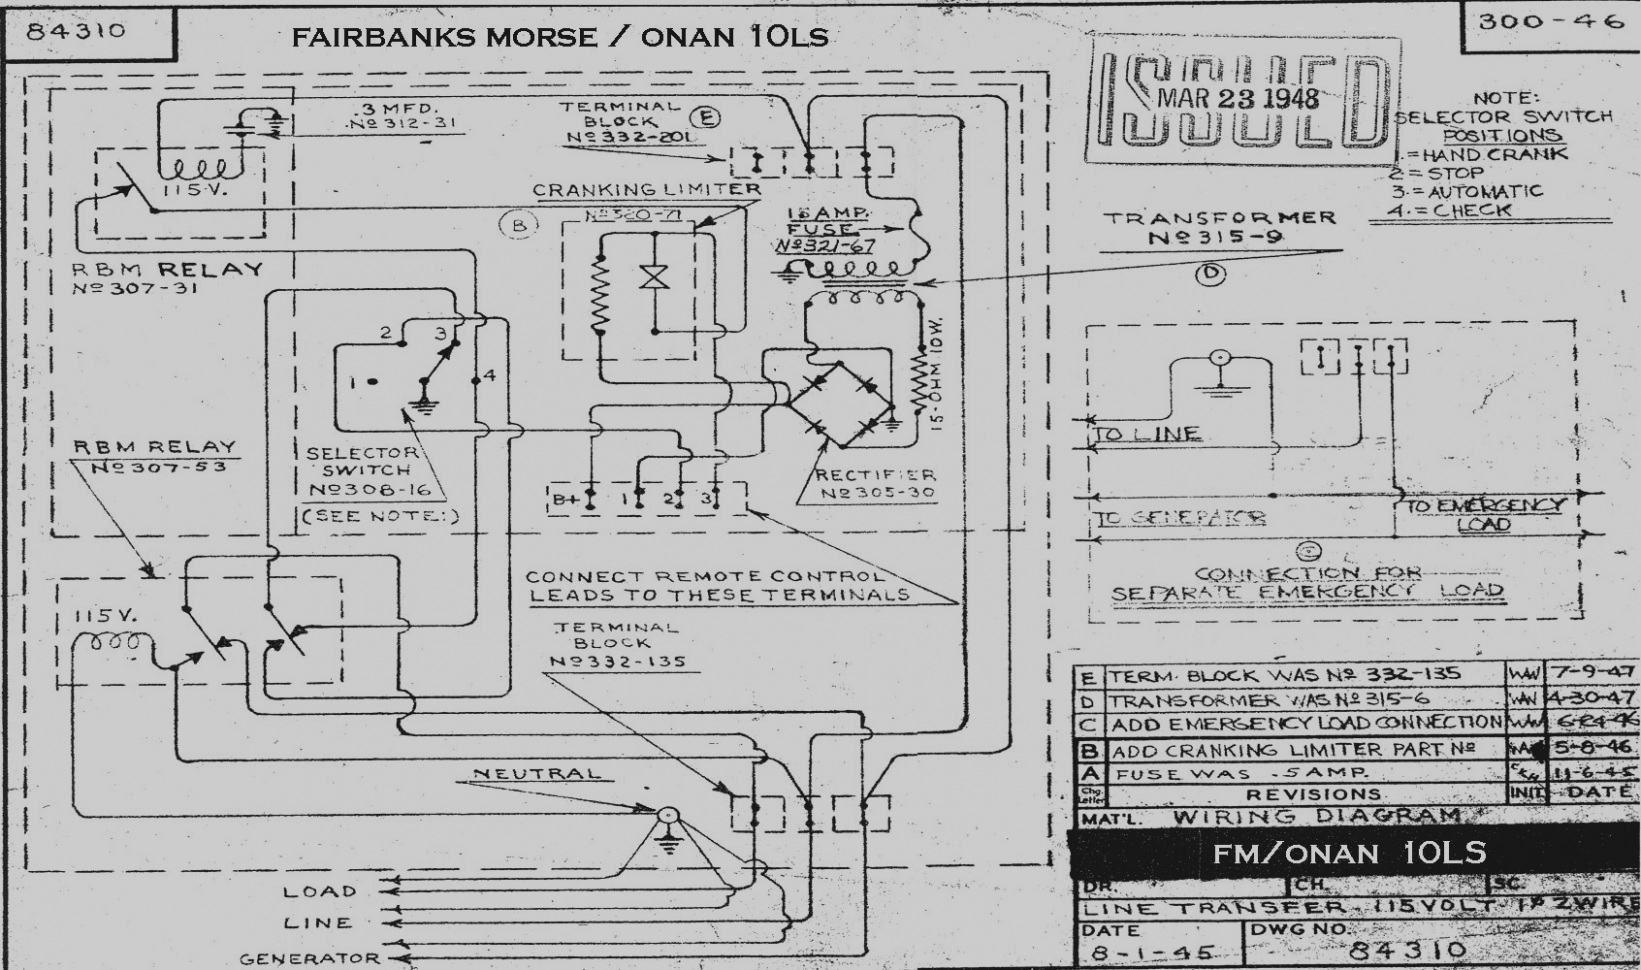 onan emerald 1 wiring diagram onan rv generator wiring diagram | free wiring diagram onan remote start wiring diagram